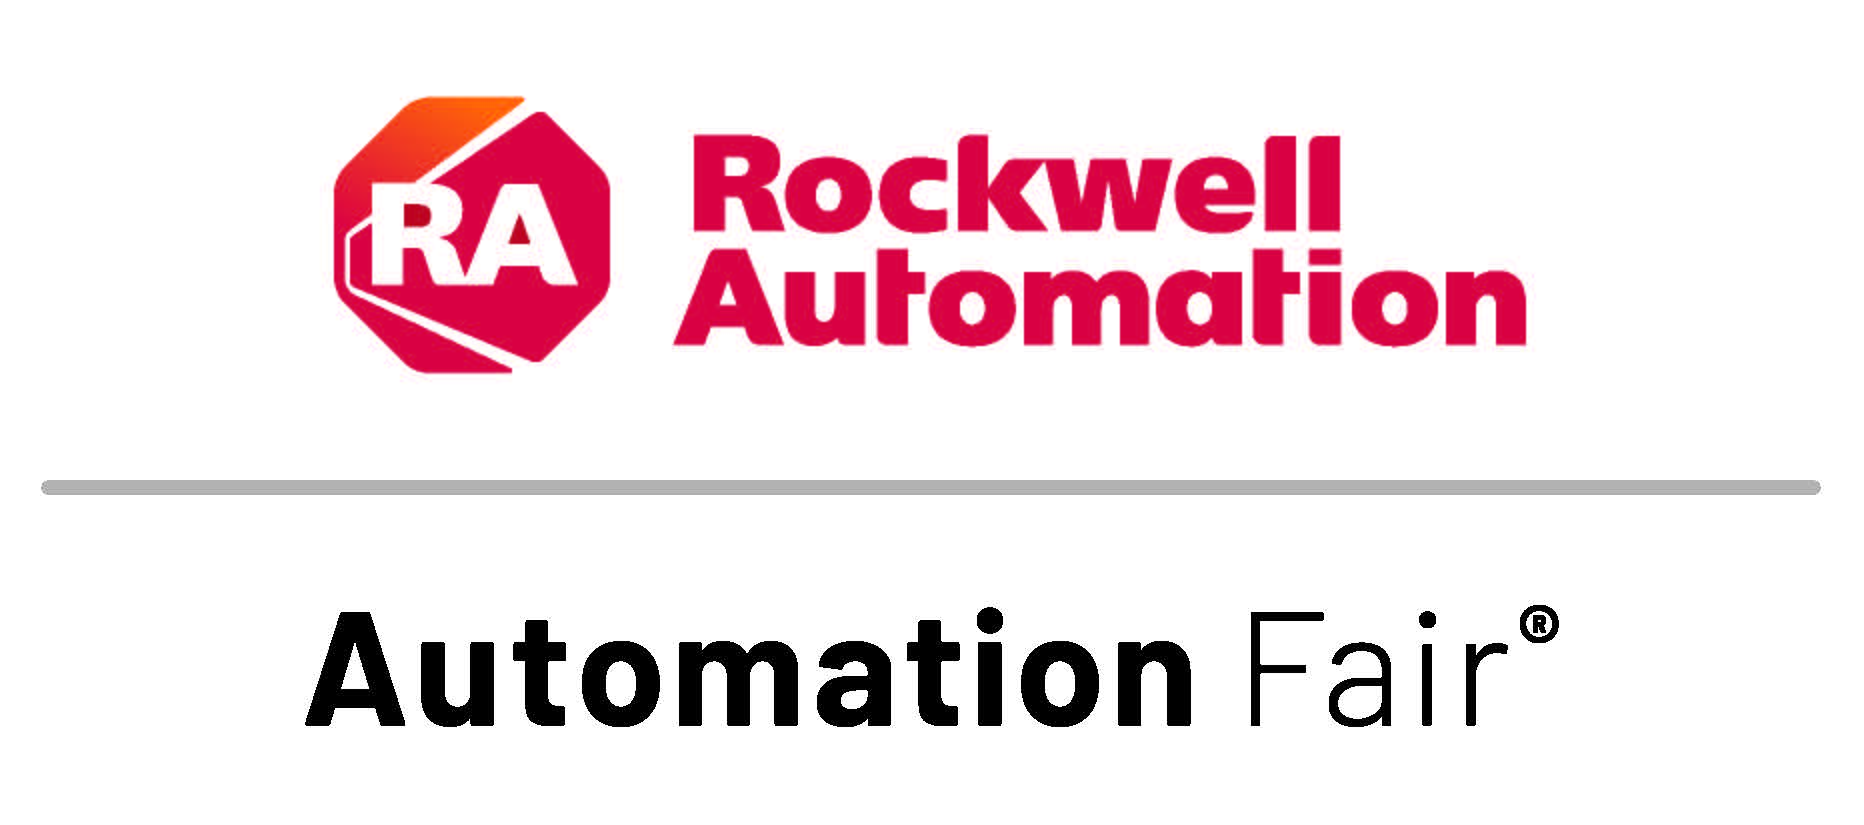 Automation Fair 2020 Logo